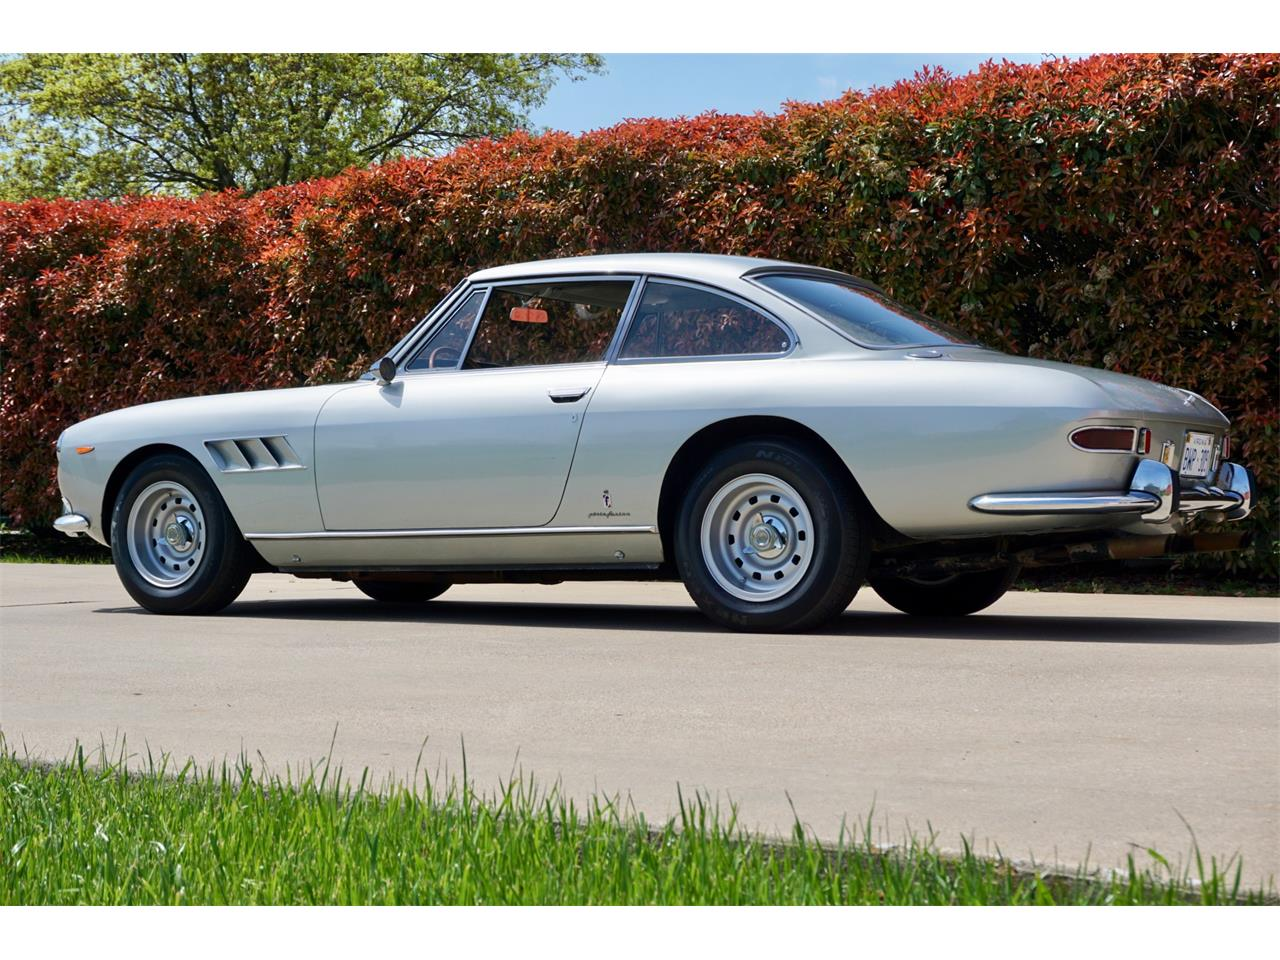 Large Picture of '66 Ferrari 330 GT located in Wylie Texas Auction Vehicle - PWUY